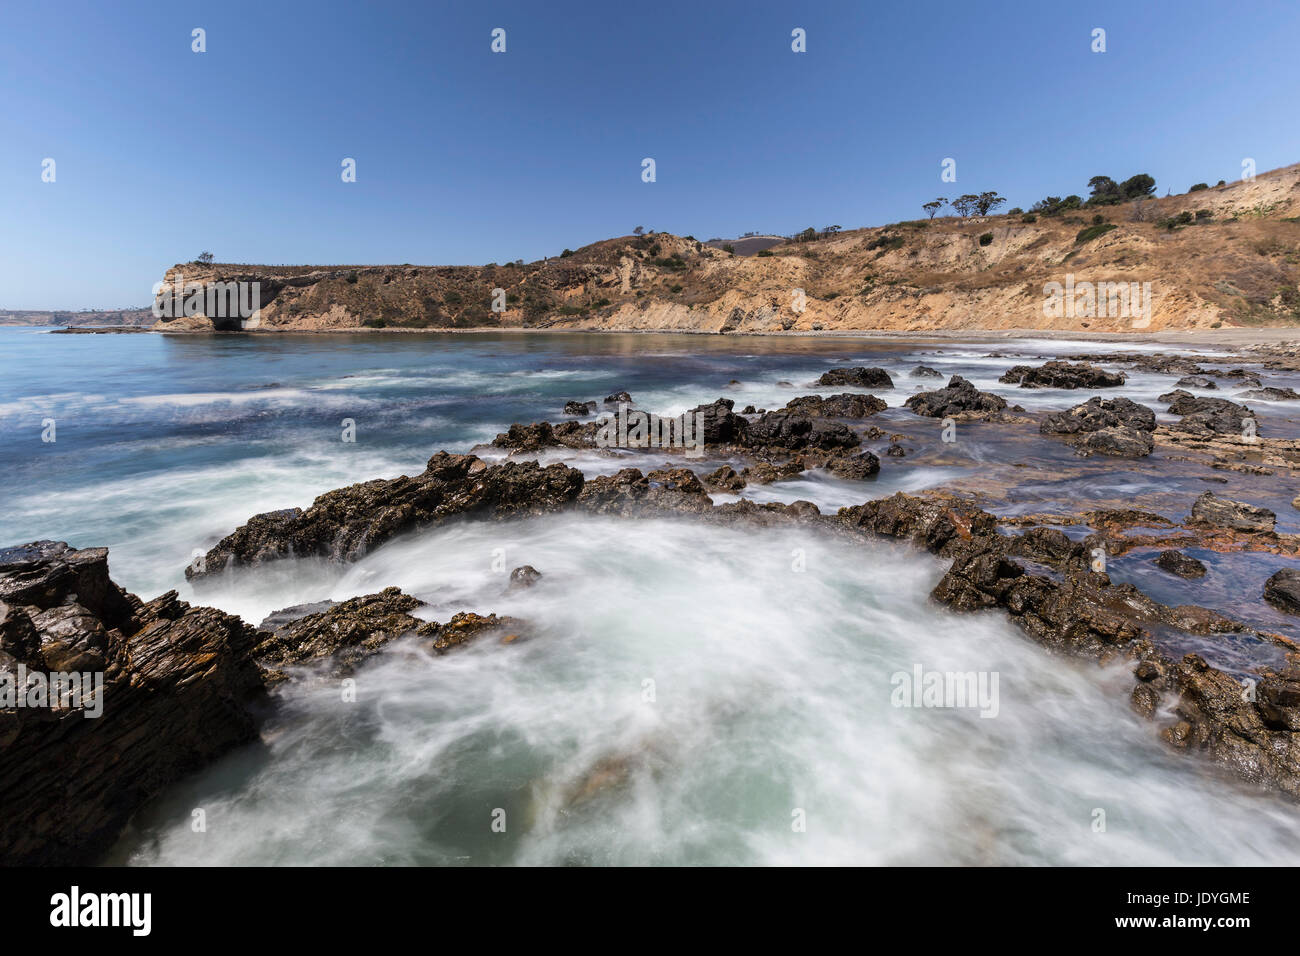 Tidal pool motion blur water at Abalone Cove Shoreline Park in Southern California. - Stock Image